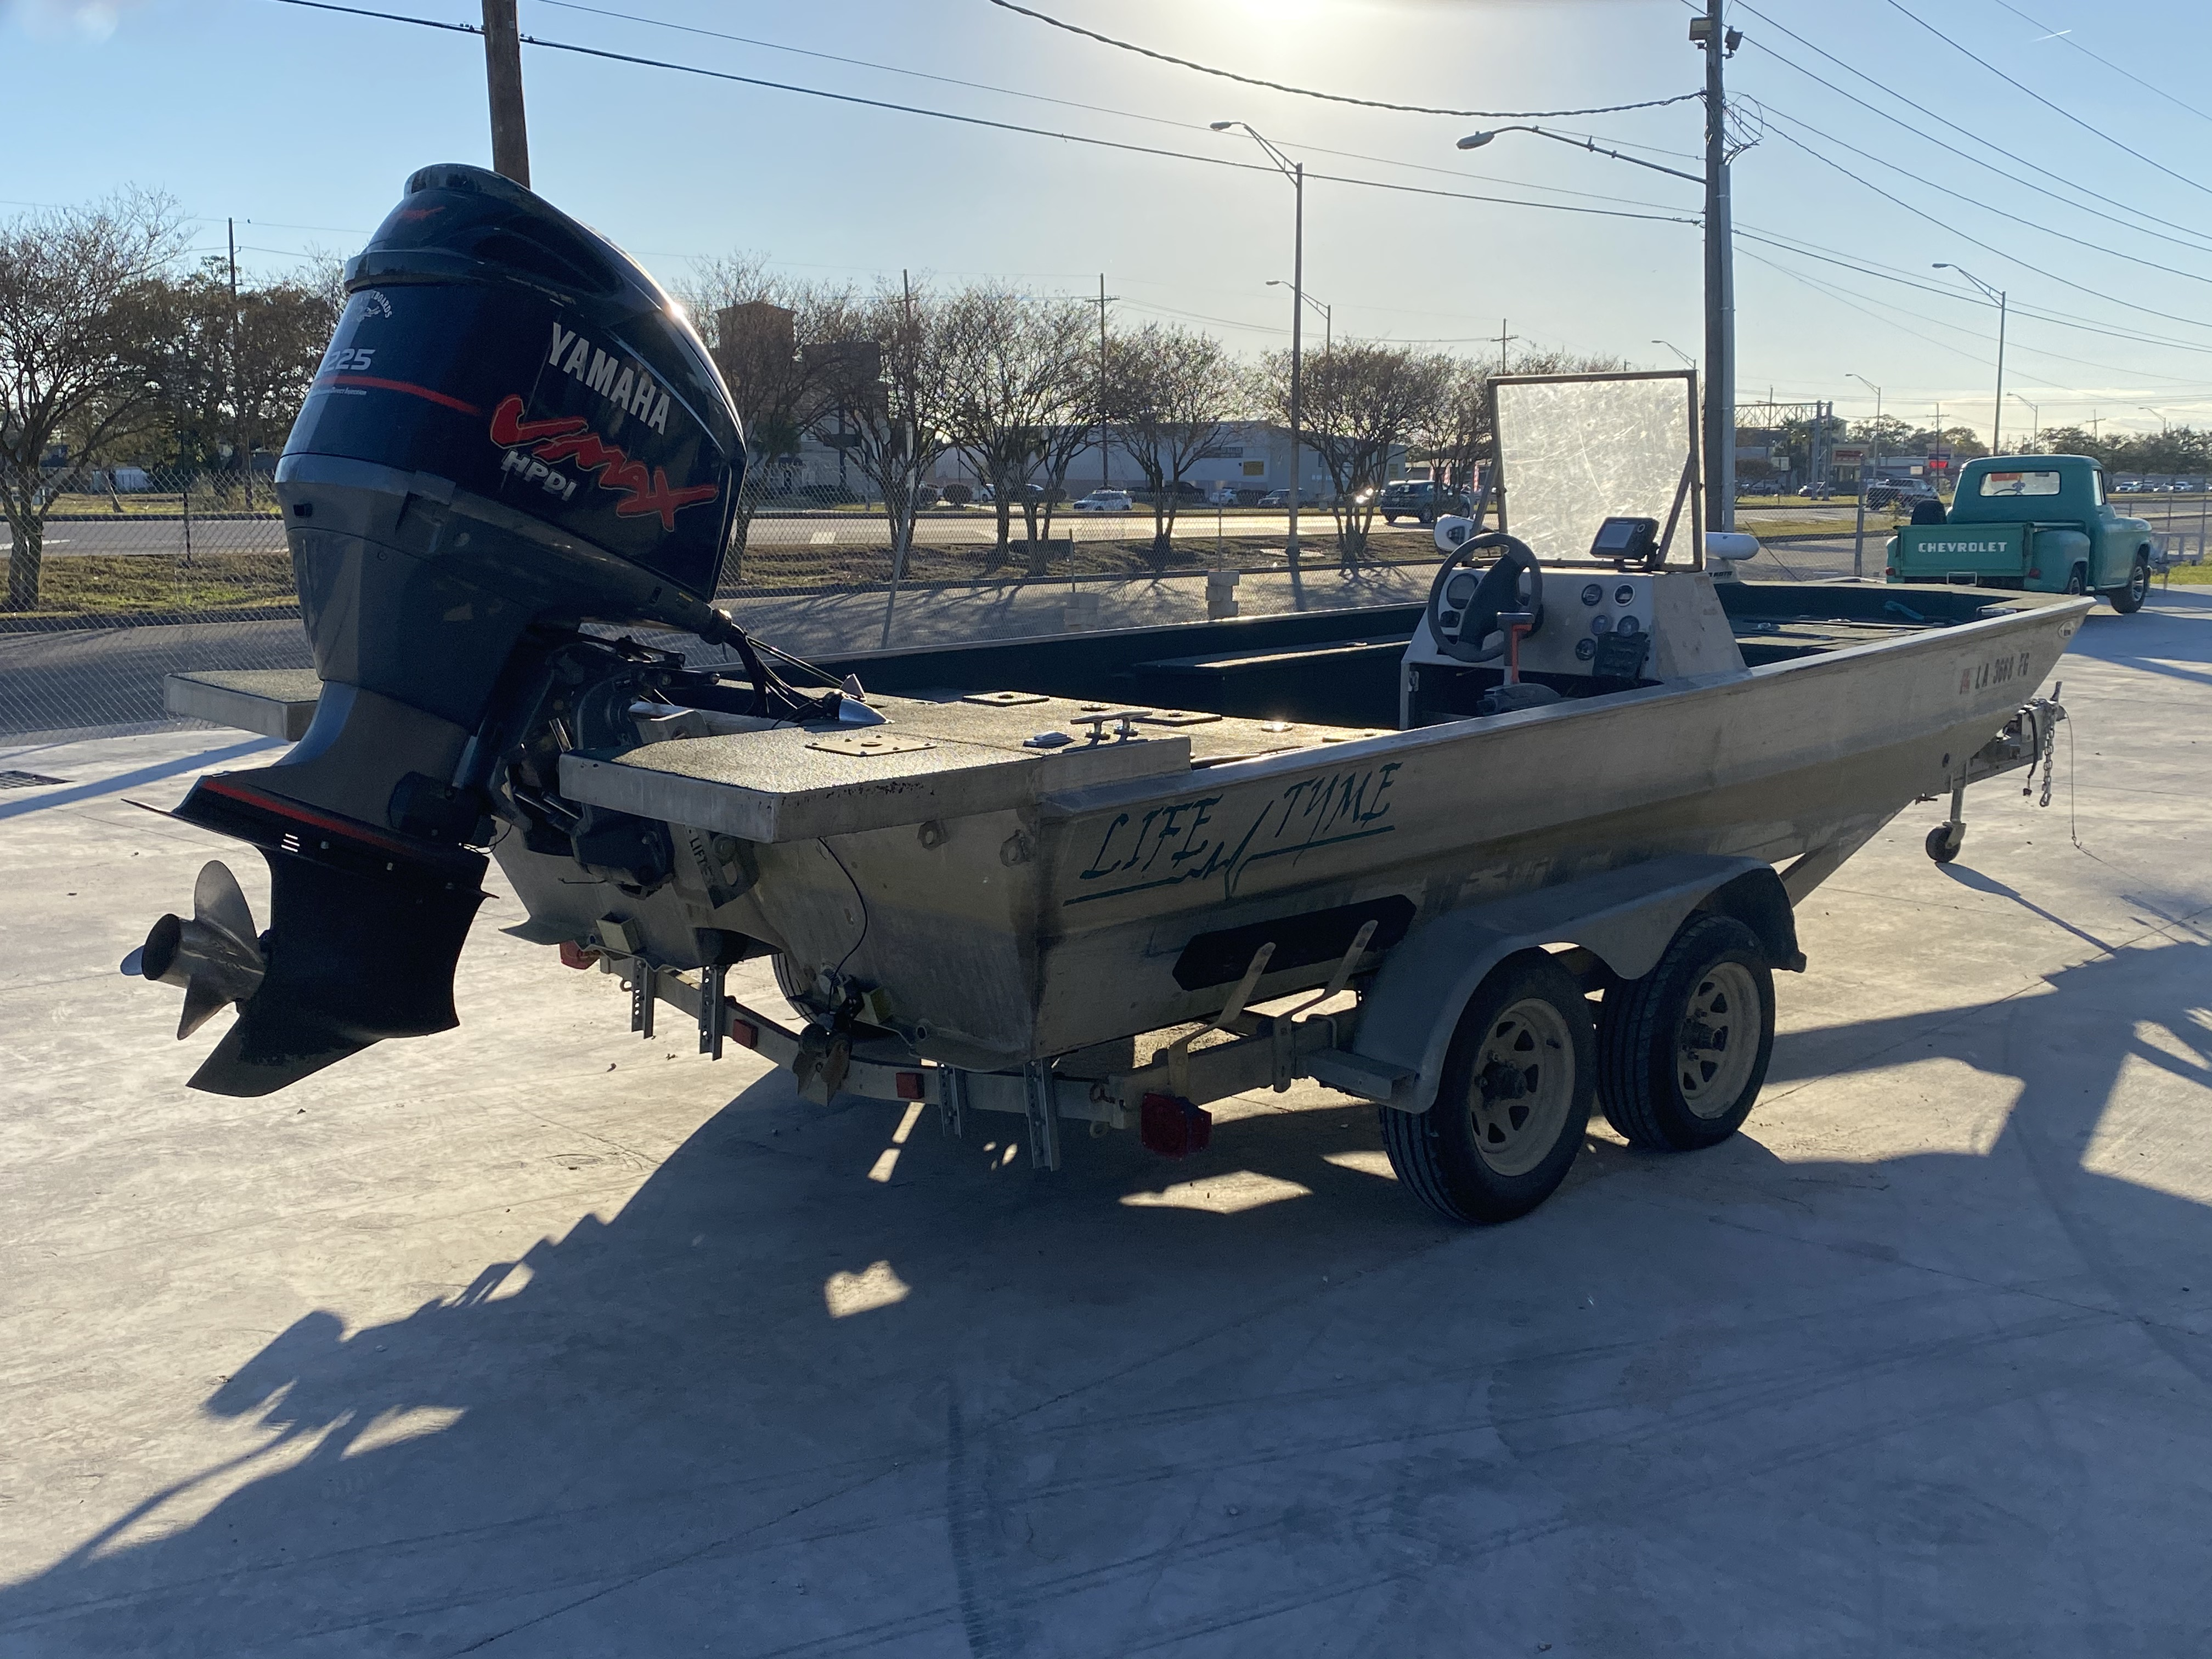 2002 Life Tyme boat for sale, model of the boat is 195 & Image # 11 of 13